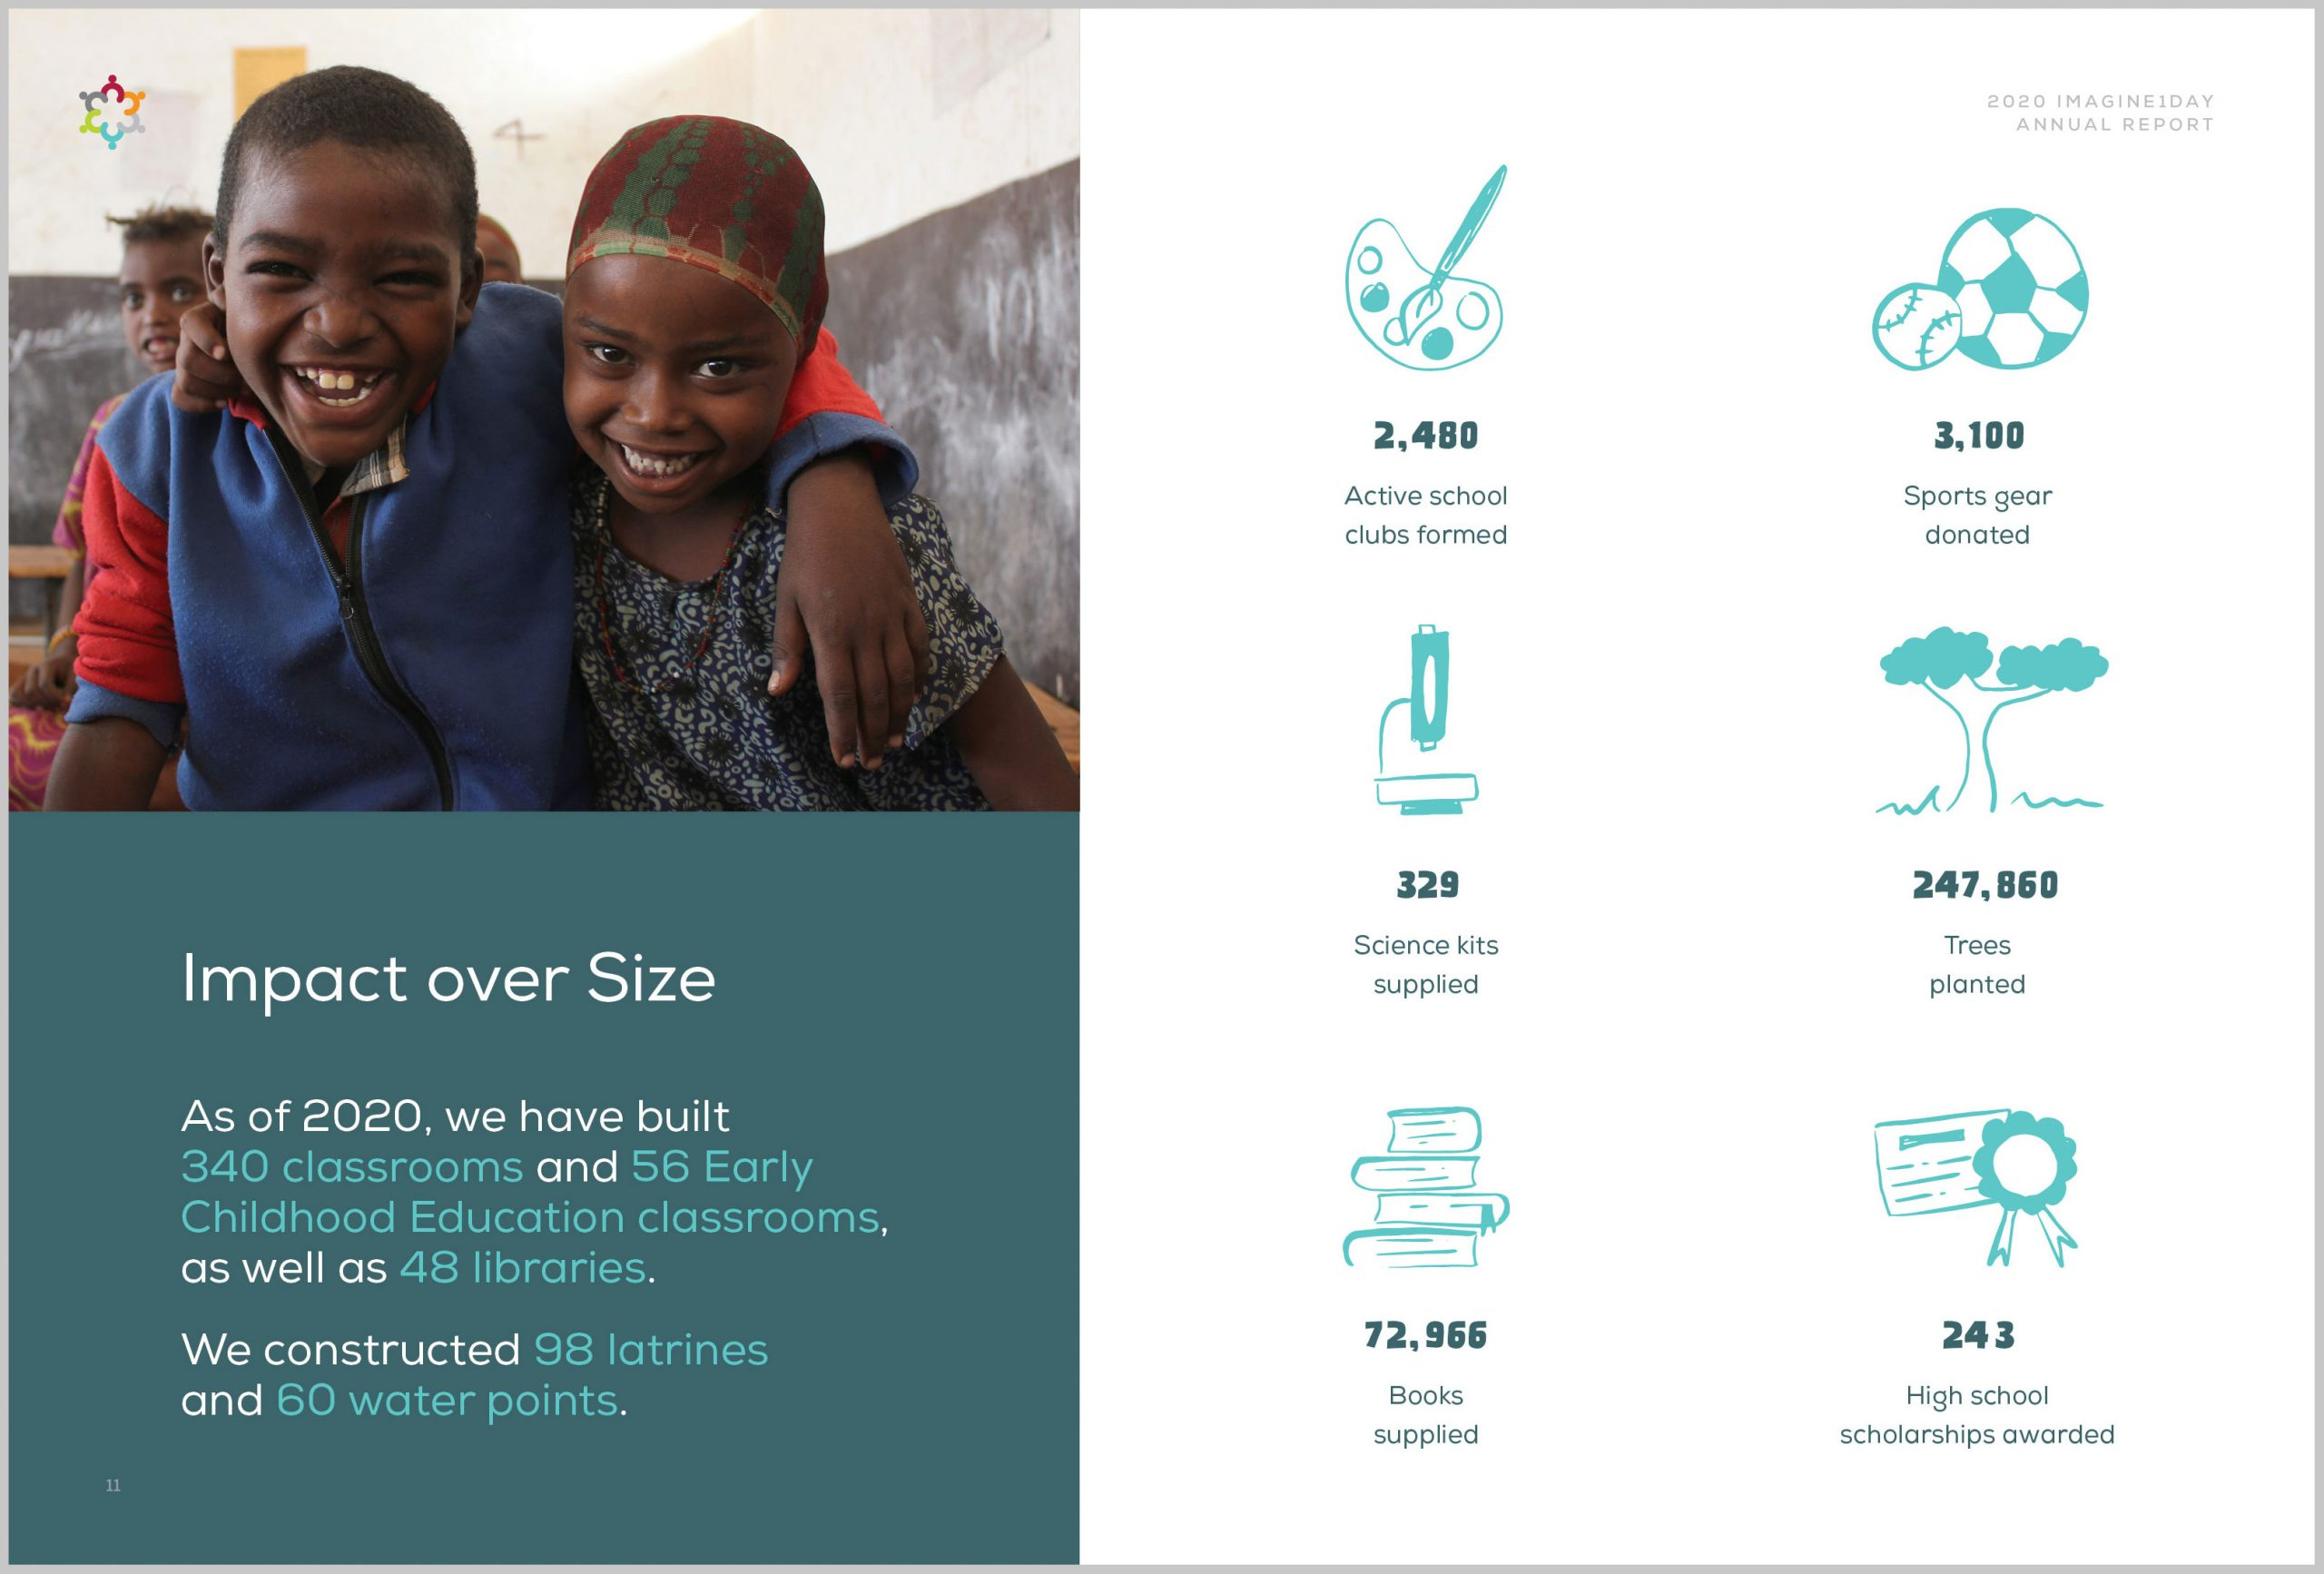 imagine1day digital Annual Report, Impact Over Size stats with custom illustrated icons   www.alicia-carvalho.com